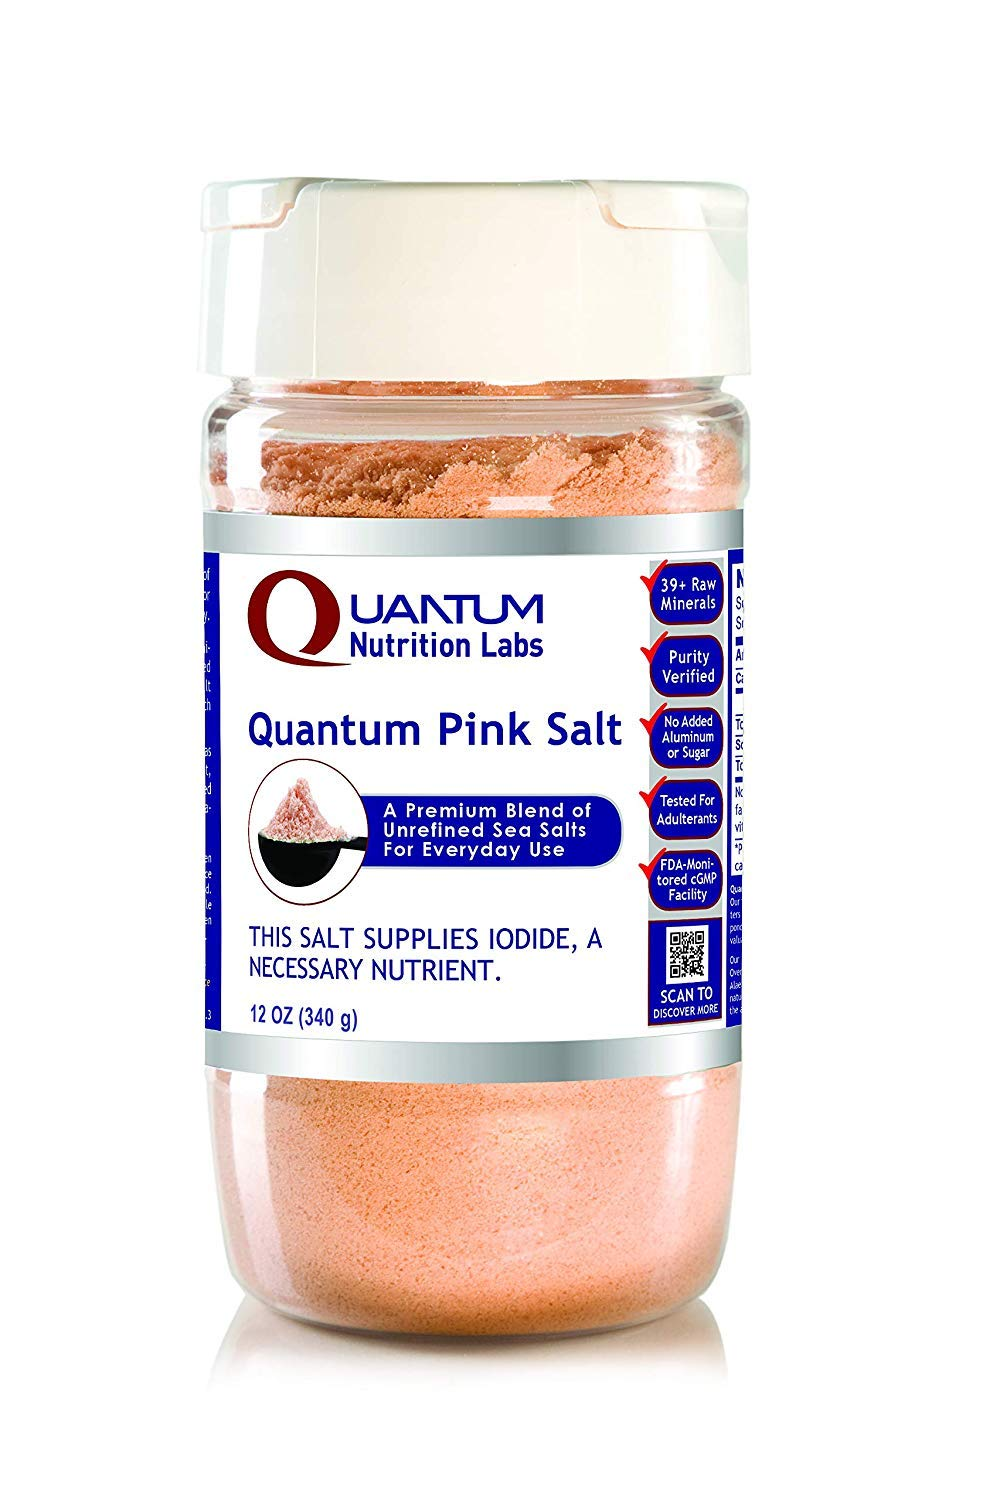 Quantum Pink Salt, 24 oz - A Premier Pink Salt Blend of Unrefined, Untreated Sea Salts for Everyday Use with No Anti-Clumping Agents or Additives